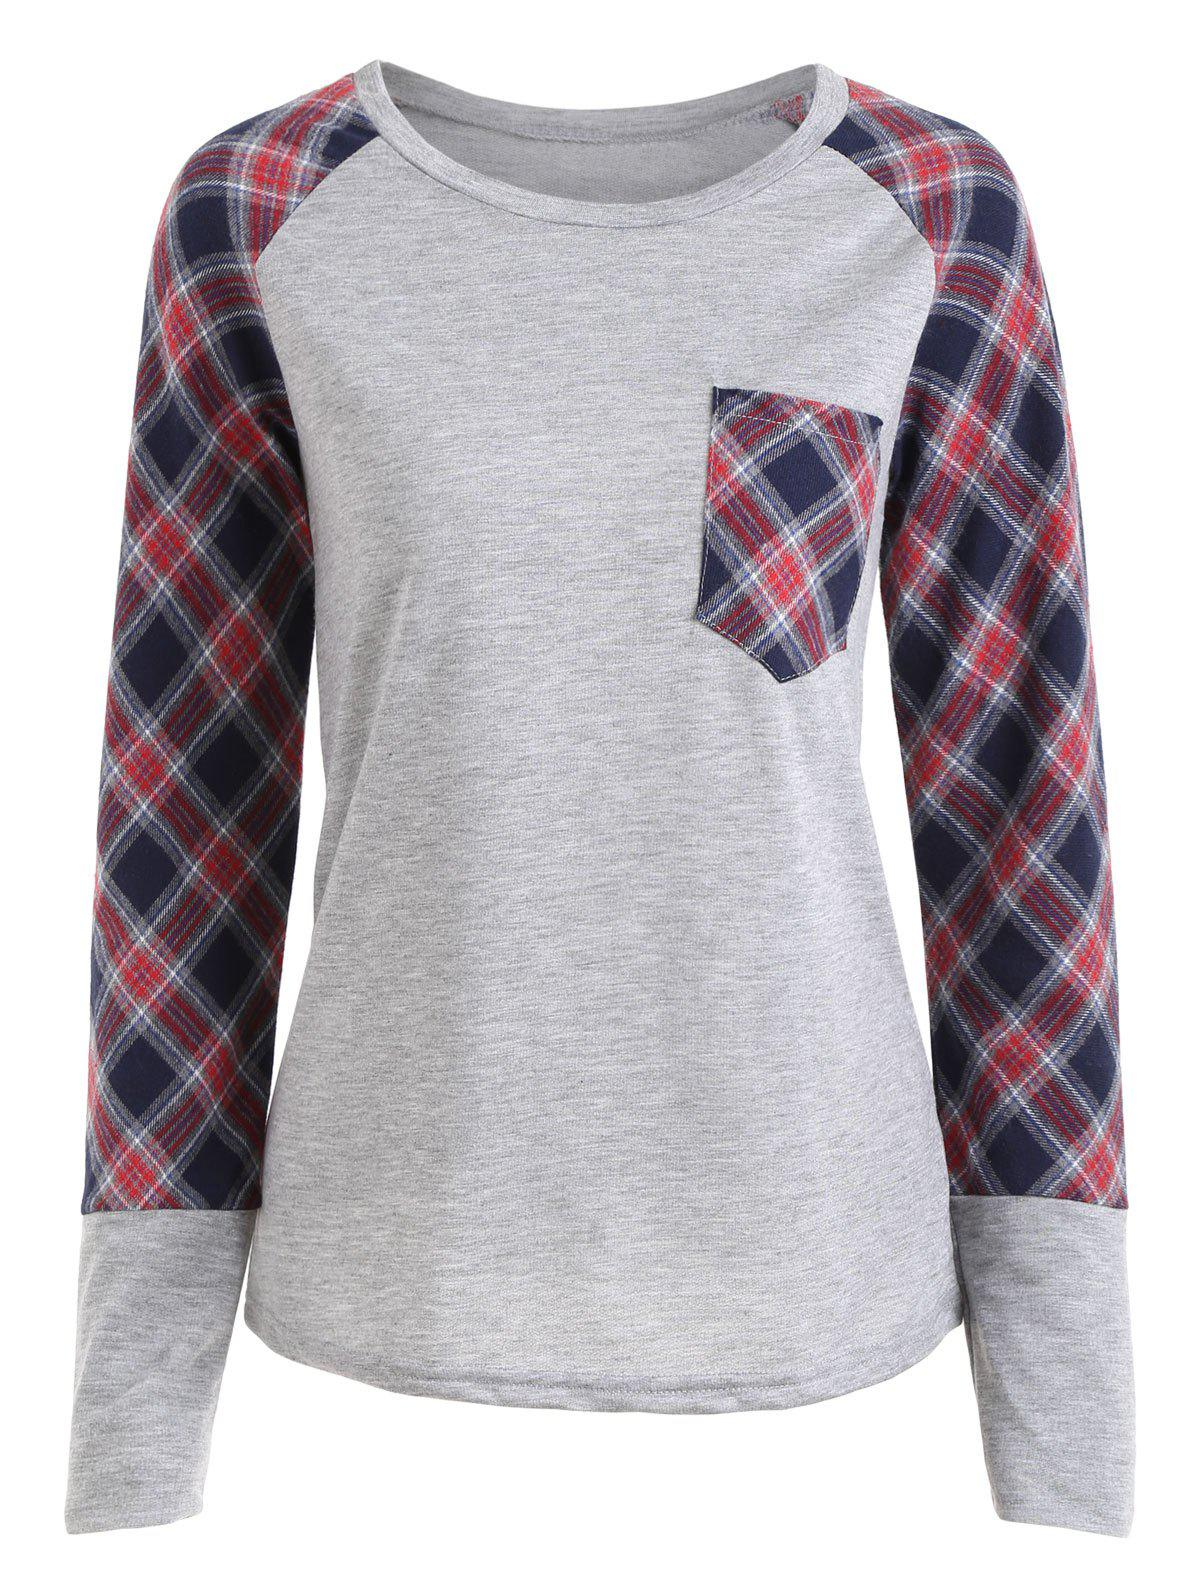 Plaid Raglan Sleeve Pocket Top - GRAY XL